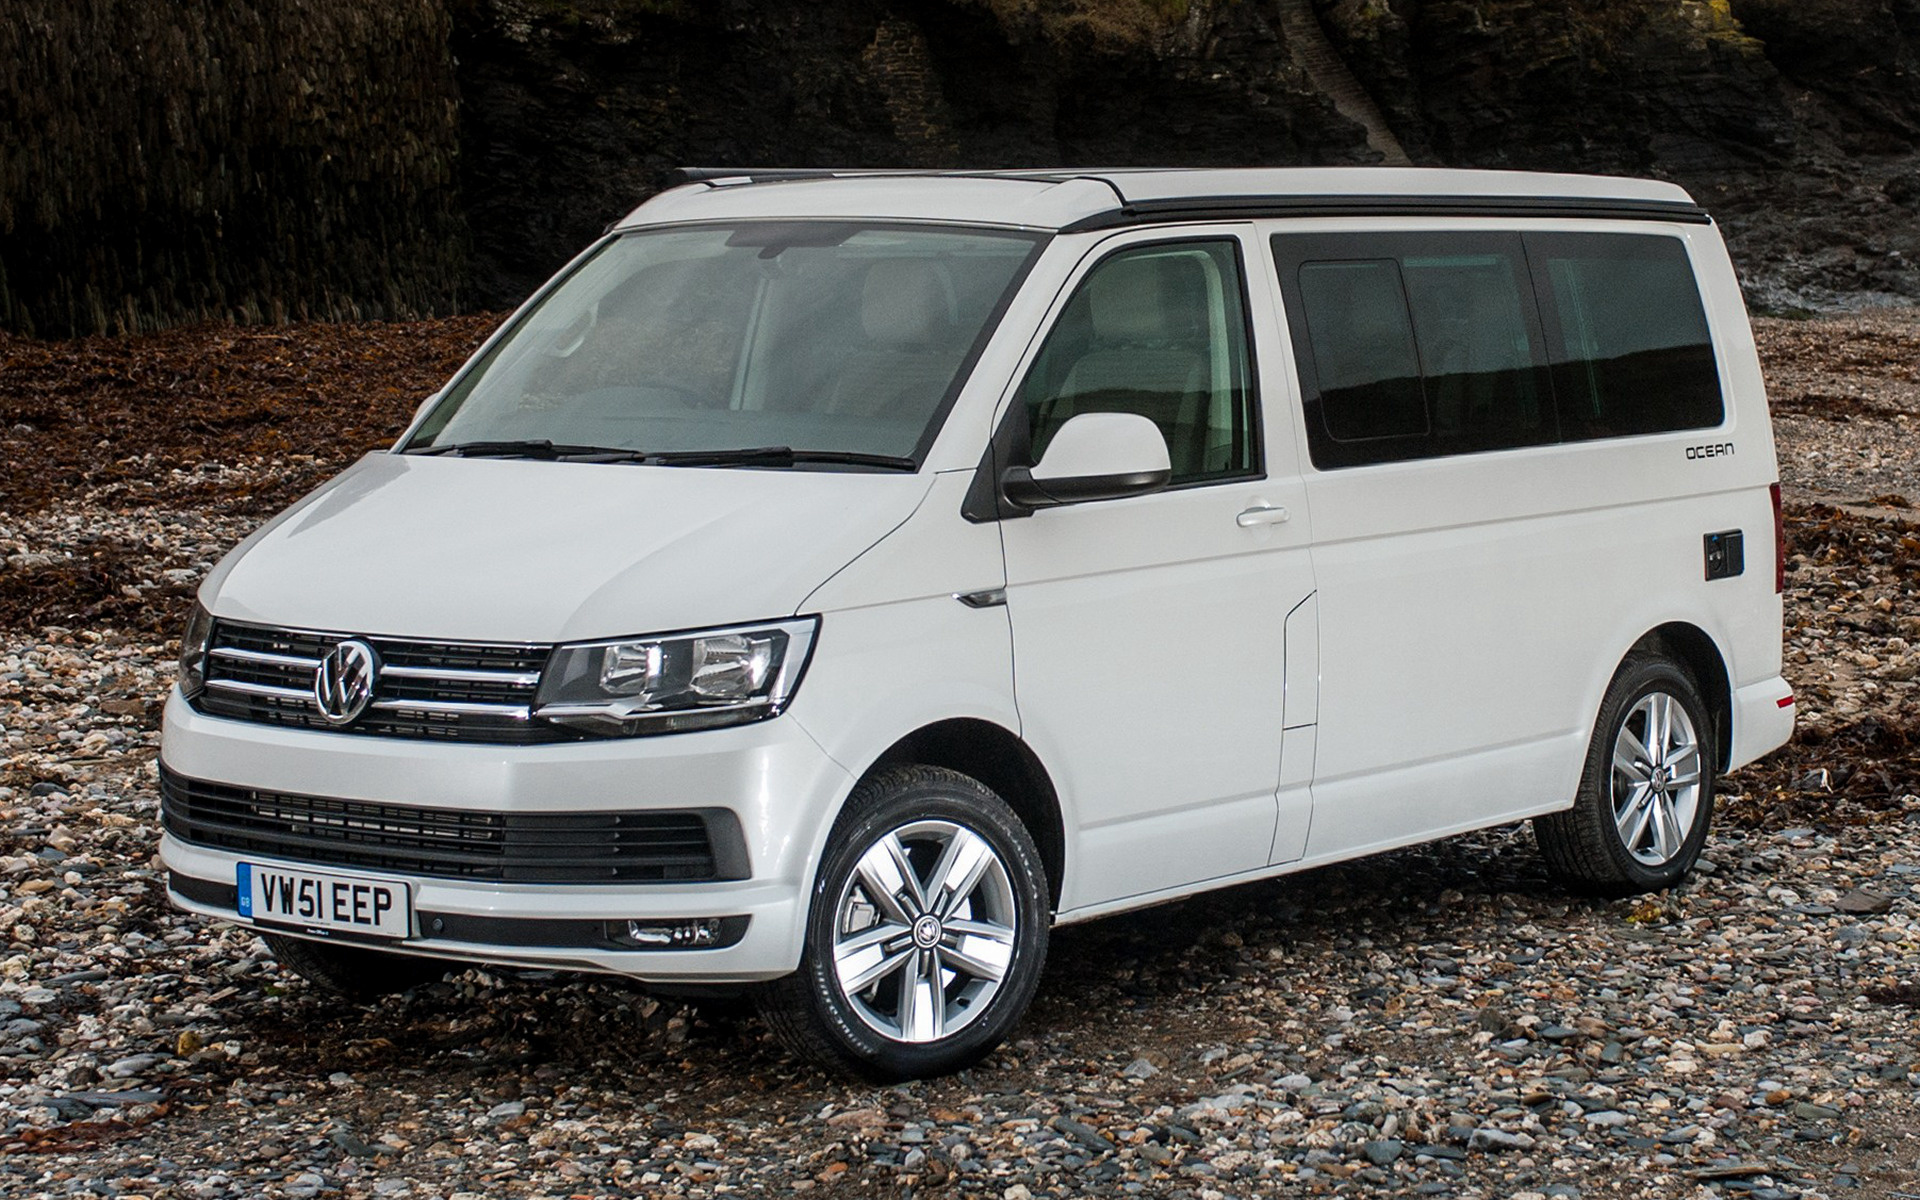 volkswagen california ocean 2015 uk wallpapers and hd images car pixel. Black Bedroom Furniture Sets. Home Design Ideas